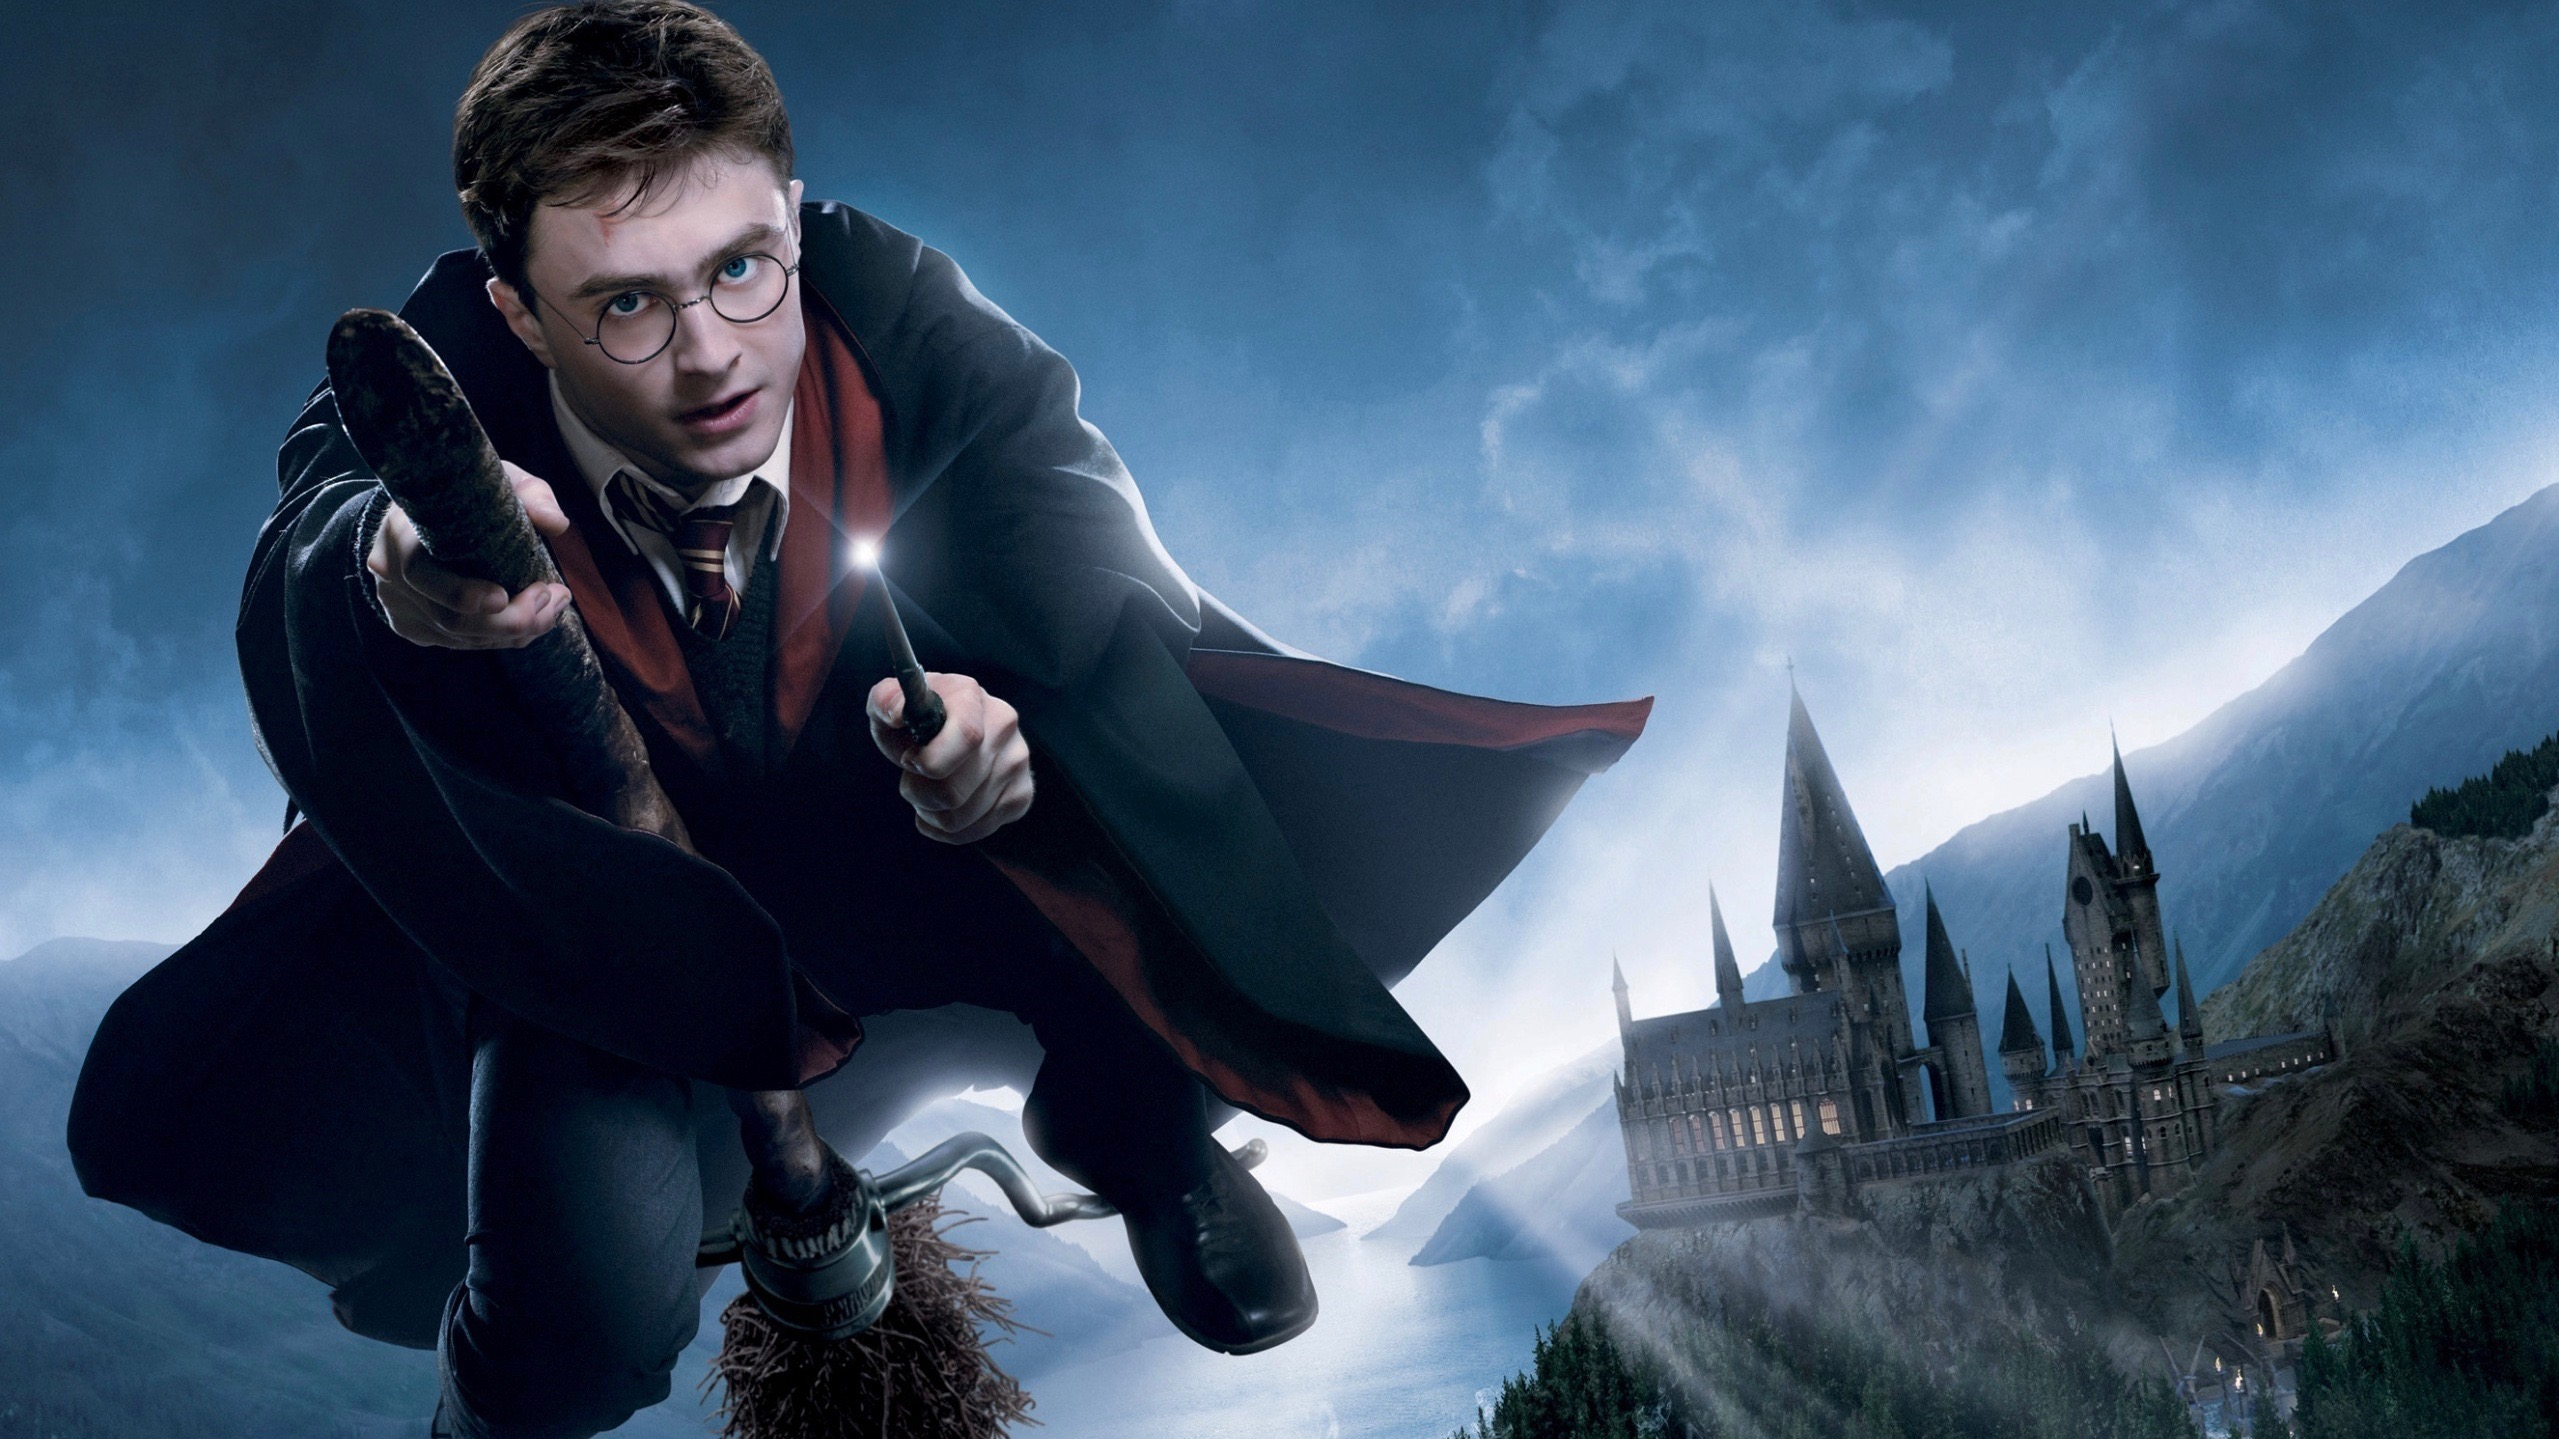 Niantic wants Harry Potter to work his magic on its next AR game after Pokémon GO [Update]